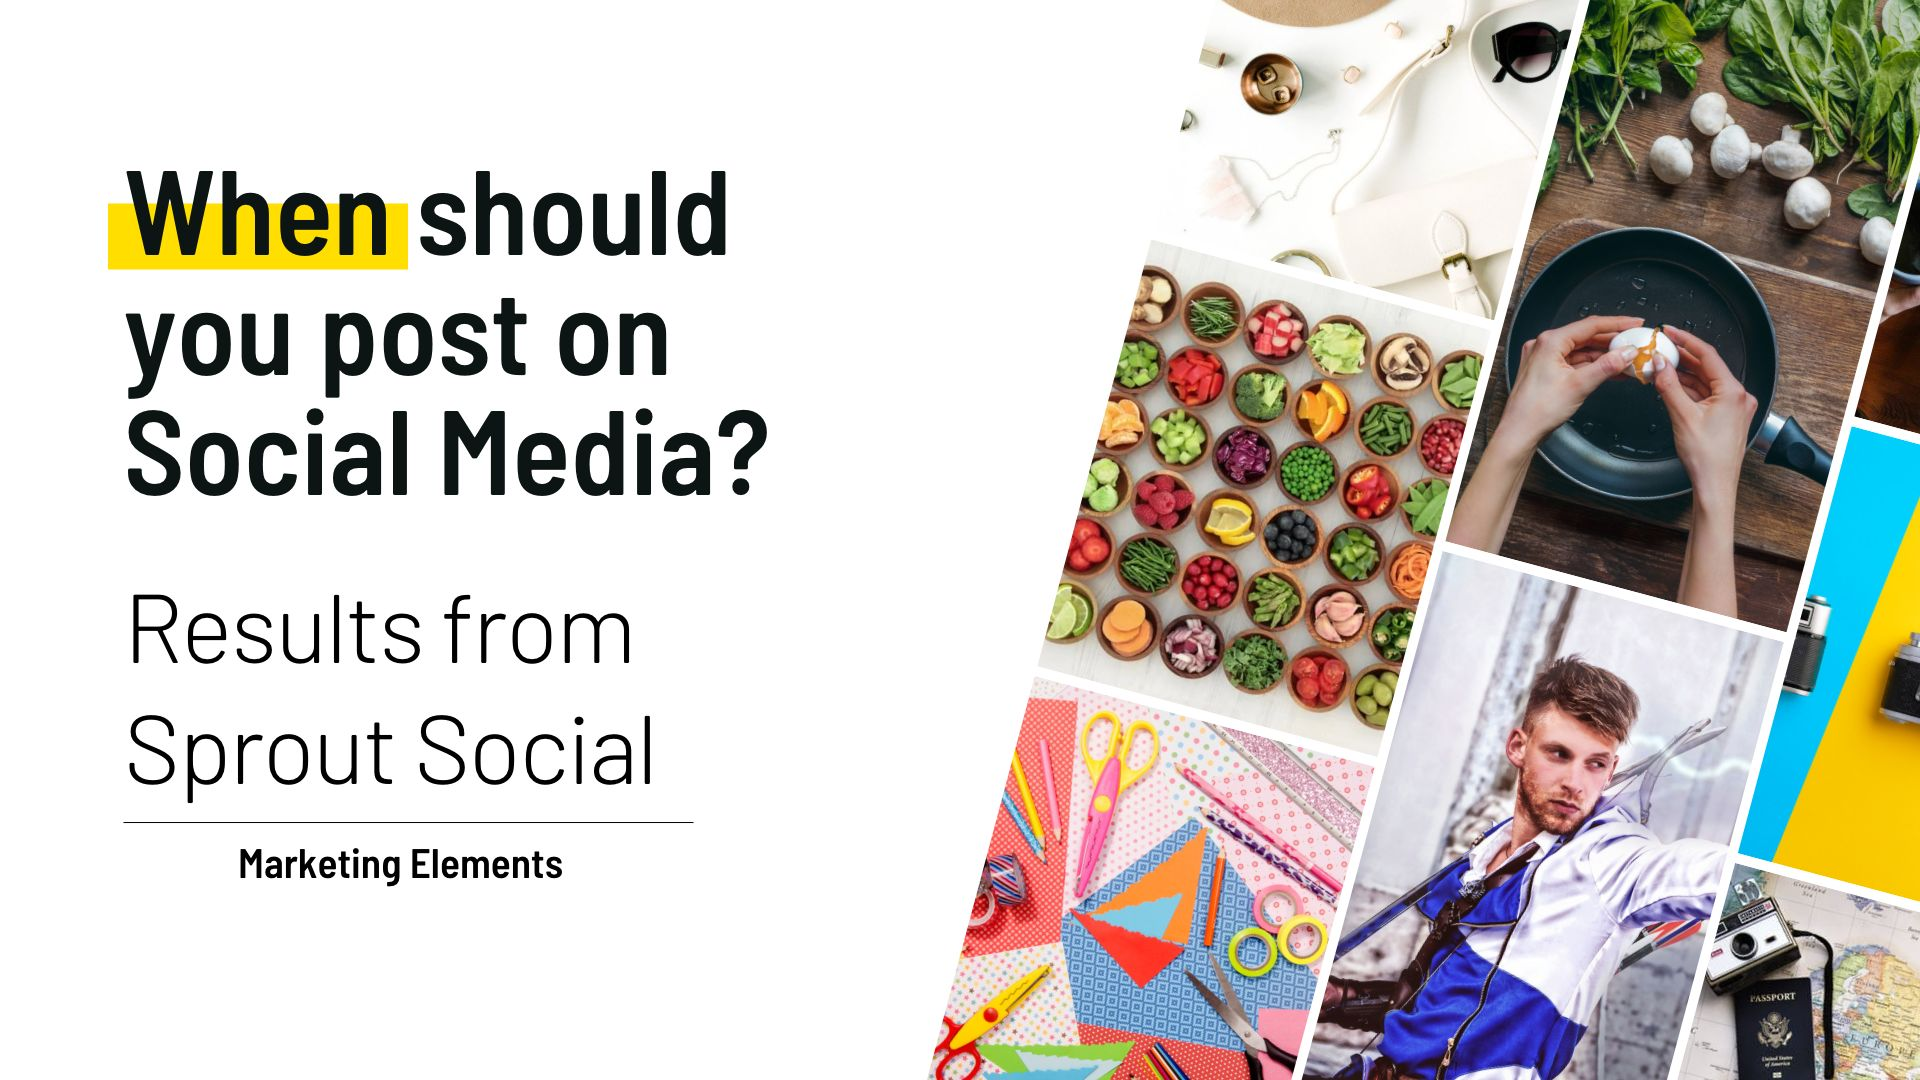 http://marketingelementsblog.com/2021/05/when-is-the-best-time-to-post-on-social-media/